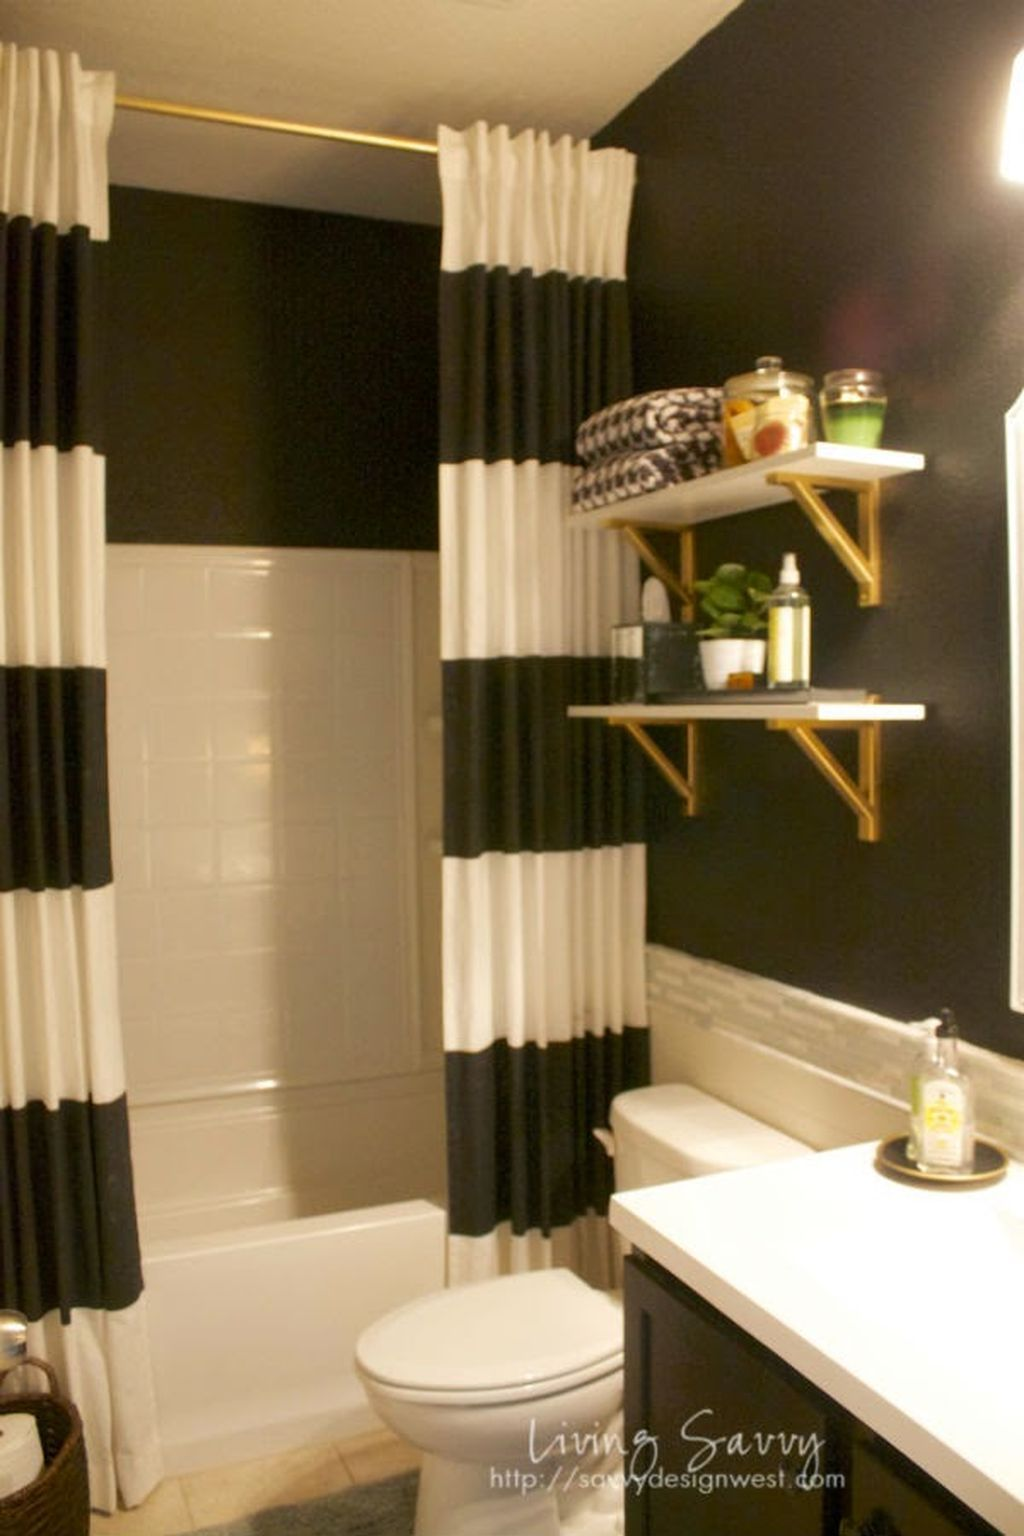 96 Beautiful Black And White Shower Curtains Design Ideas Http